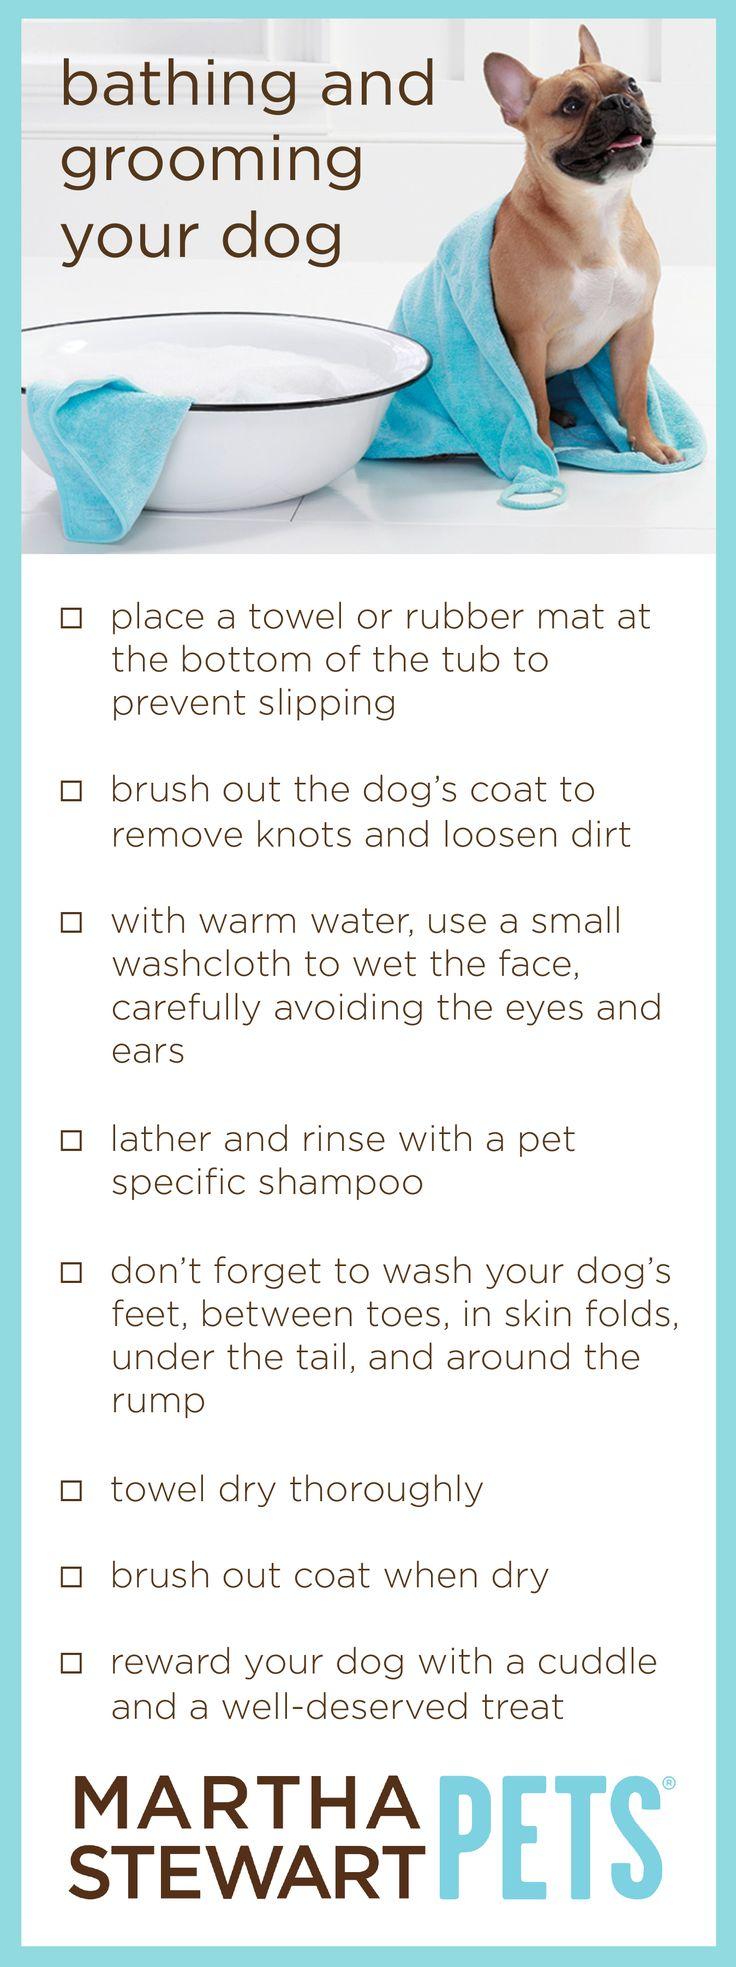 Martha Stewart Pets tips on bathing and grooming your dog. Check out our selection of grooming tools available at Pet Smart! (pet care): Pets Tips, Dog Tip, Pet Care, Pet Smart, Dog Grooming, Martha Stewart Pets, Pet Tips